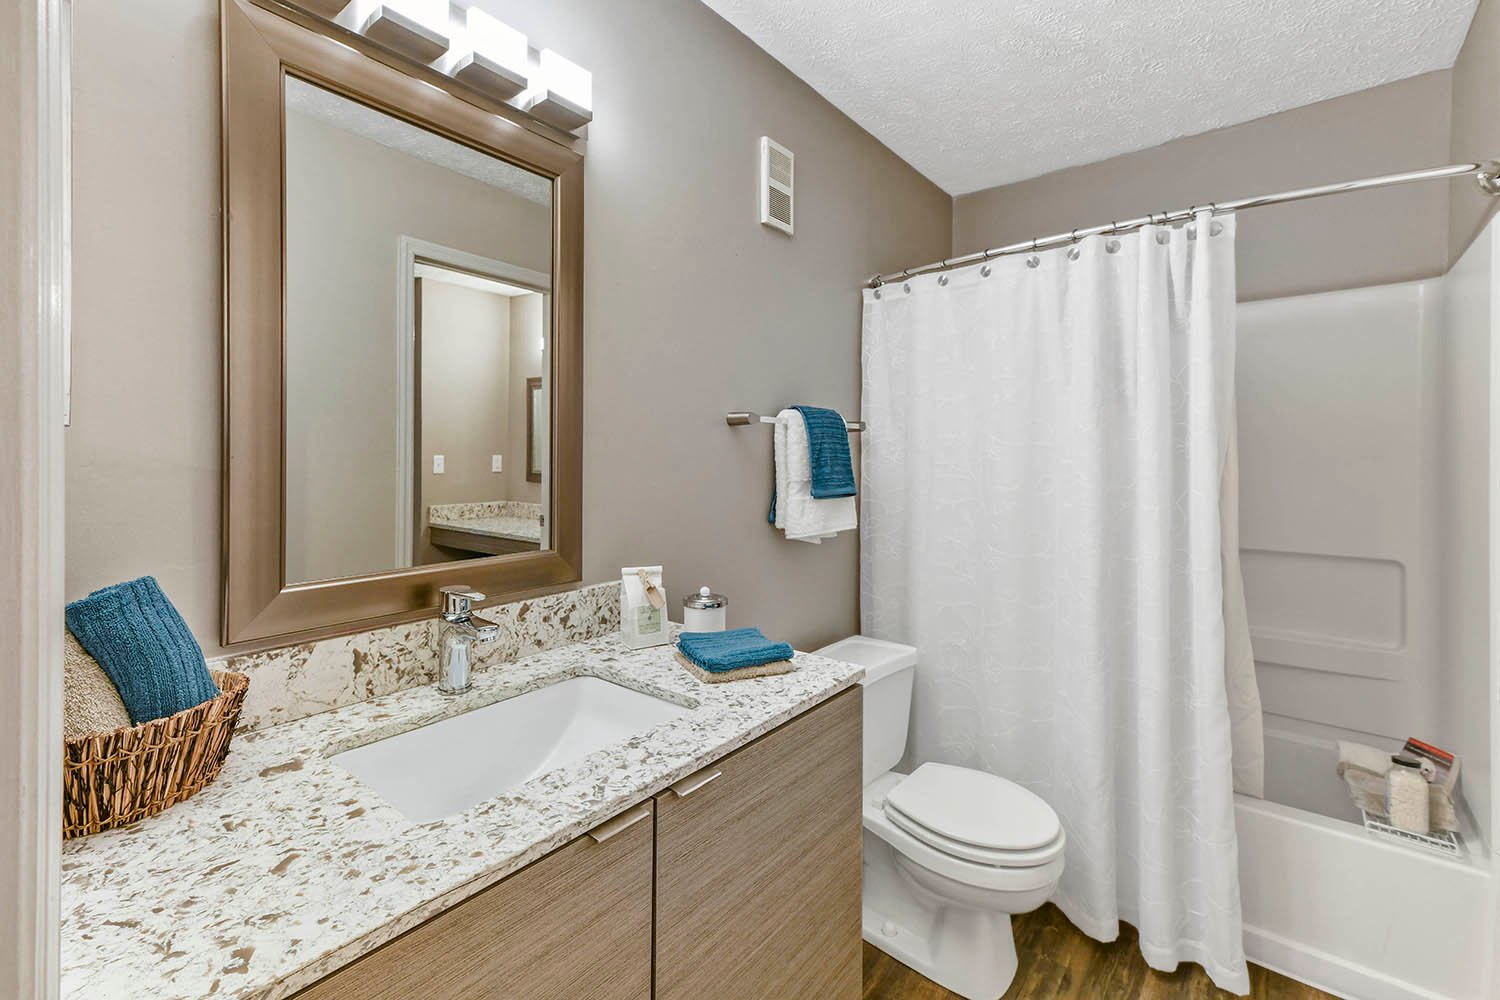 Spa Inspired Bathrooms at Patchen Oaks Apartments, Lexington, KY